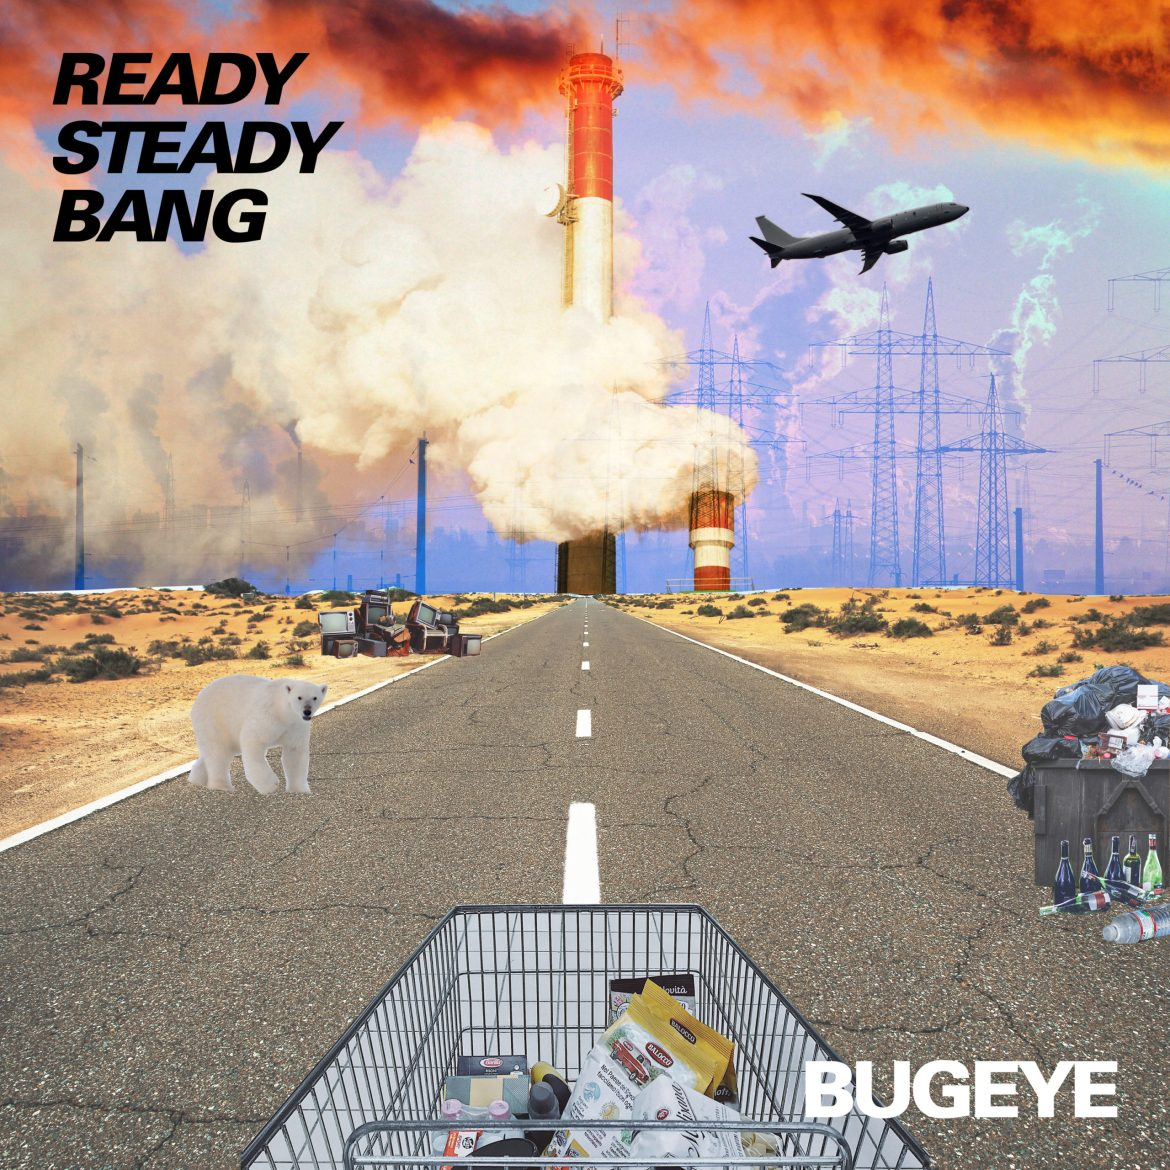 Bugeye – Ready, Steady, Bang (Reckless, Yes)